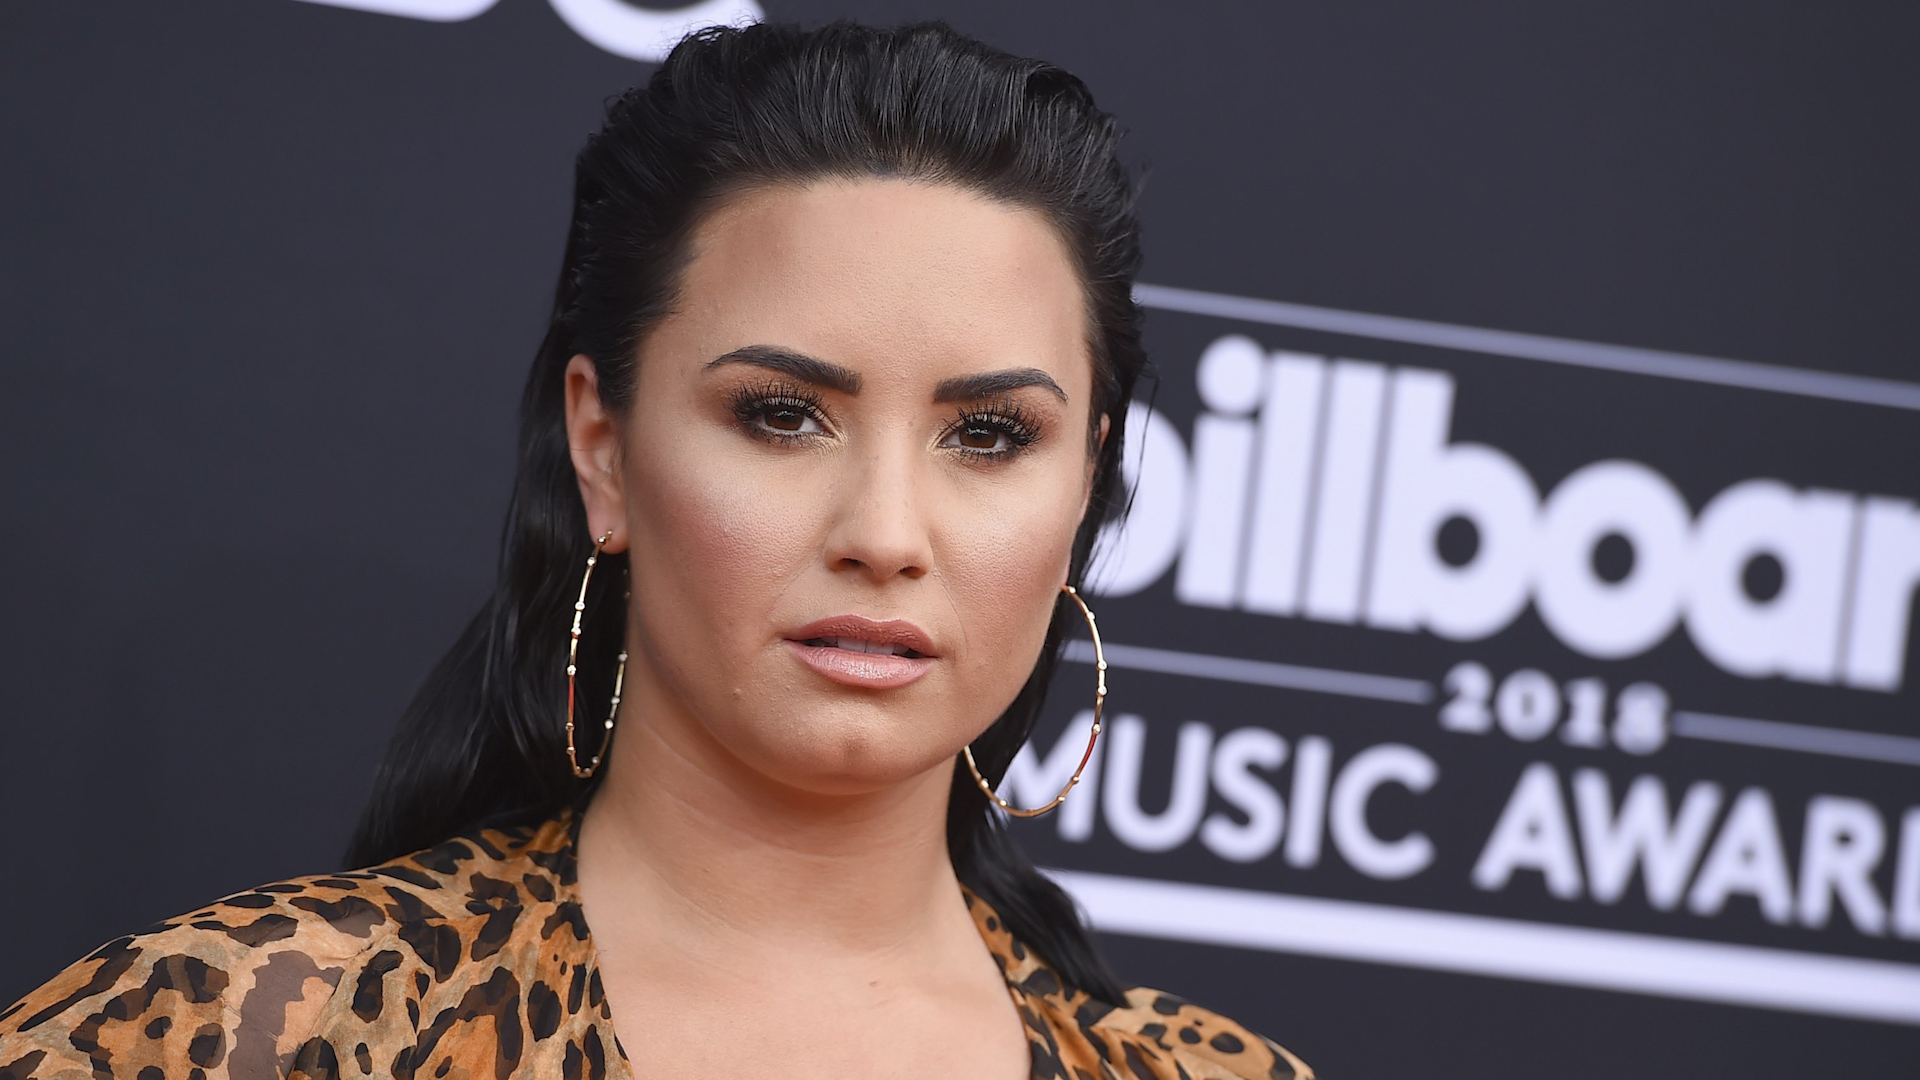 Demi Lovato Allegedly Used Meth Leading Up to Overdose